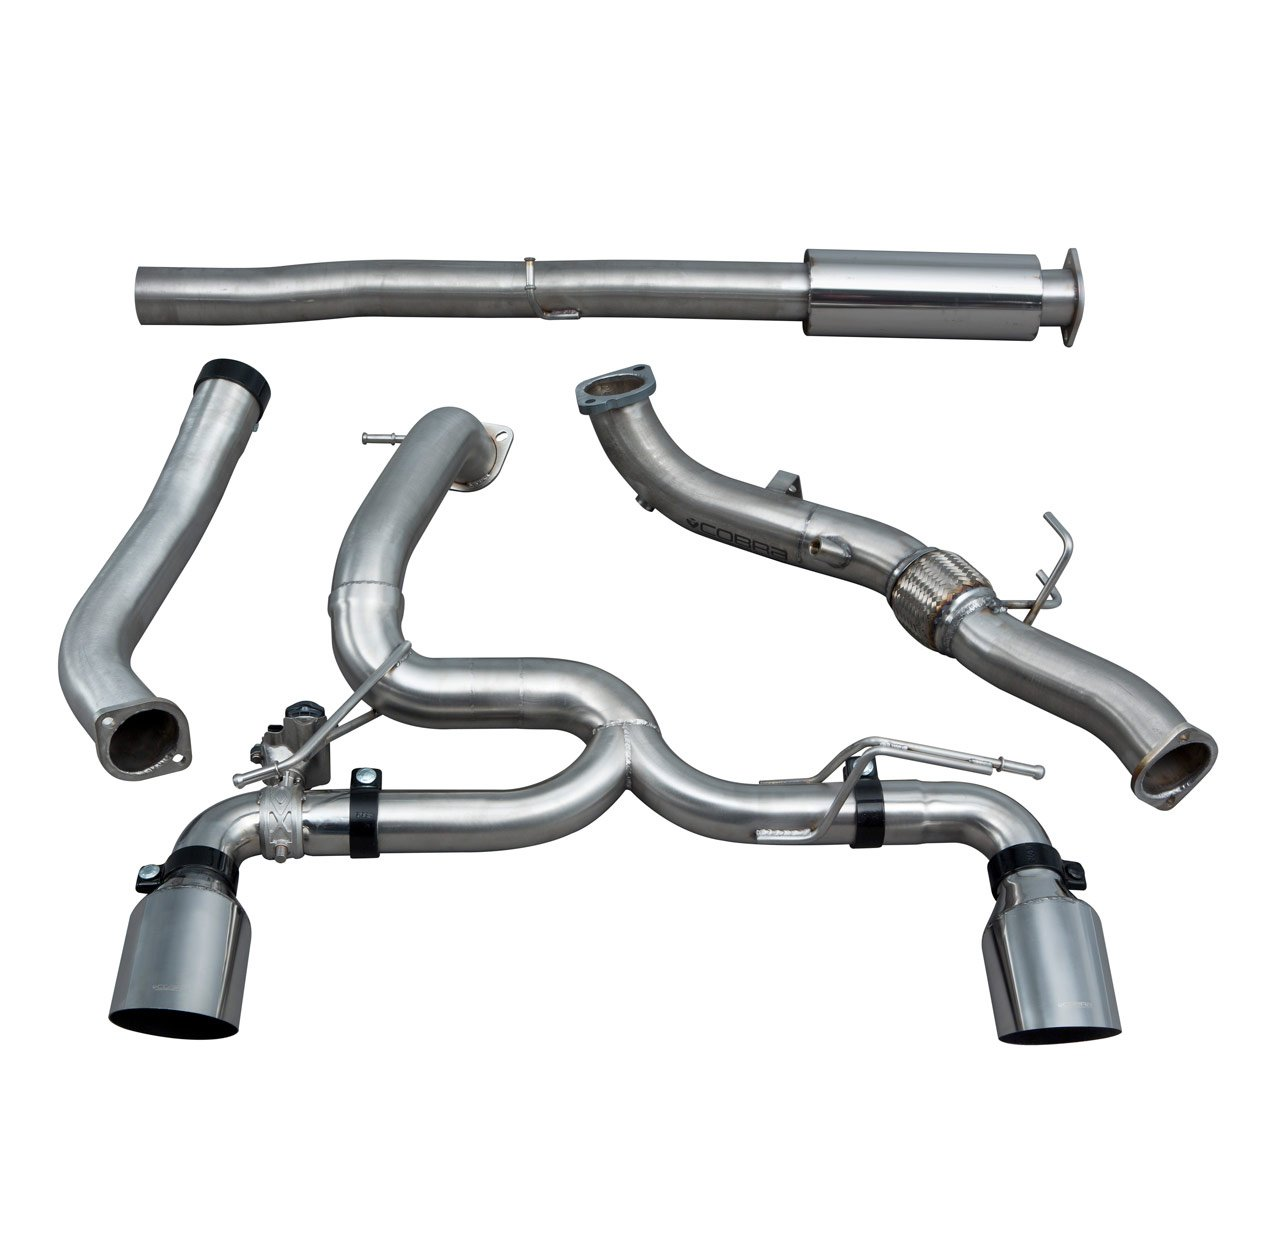 Ford Focus RS (MK3) Venom Box Delete Race Turbo Back Performance Exhaust